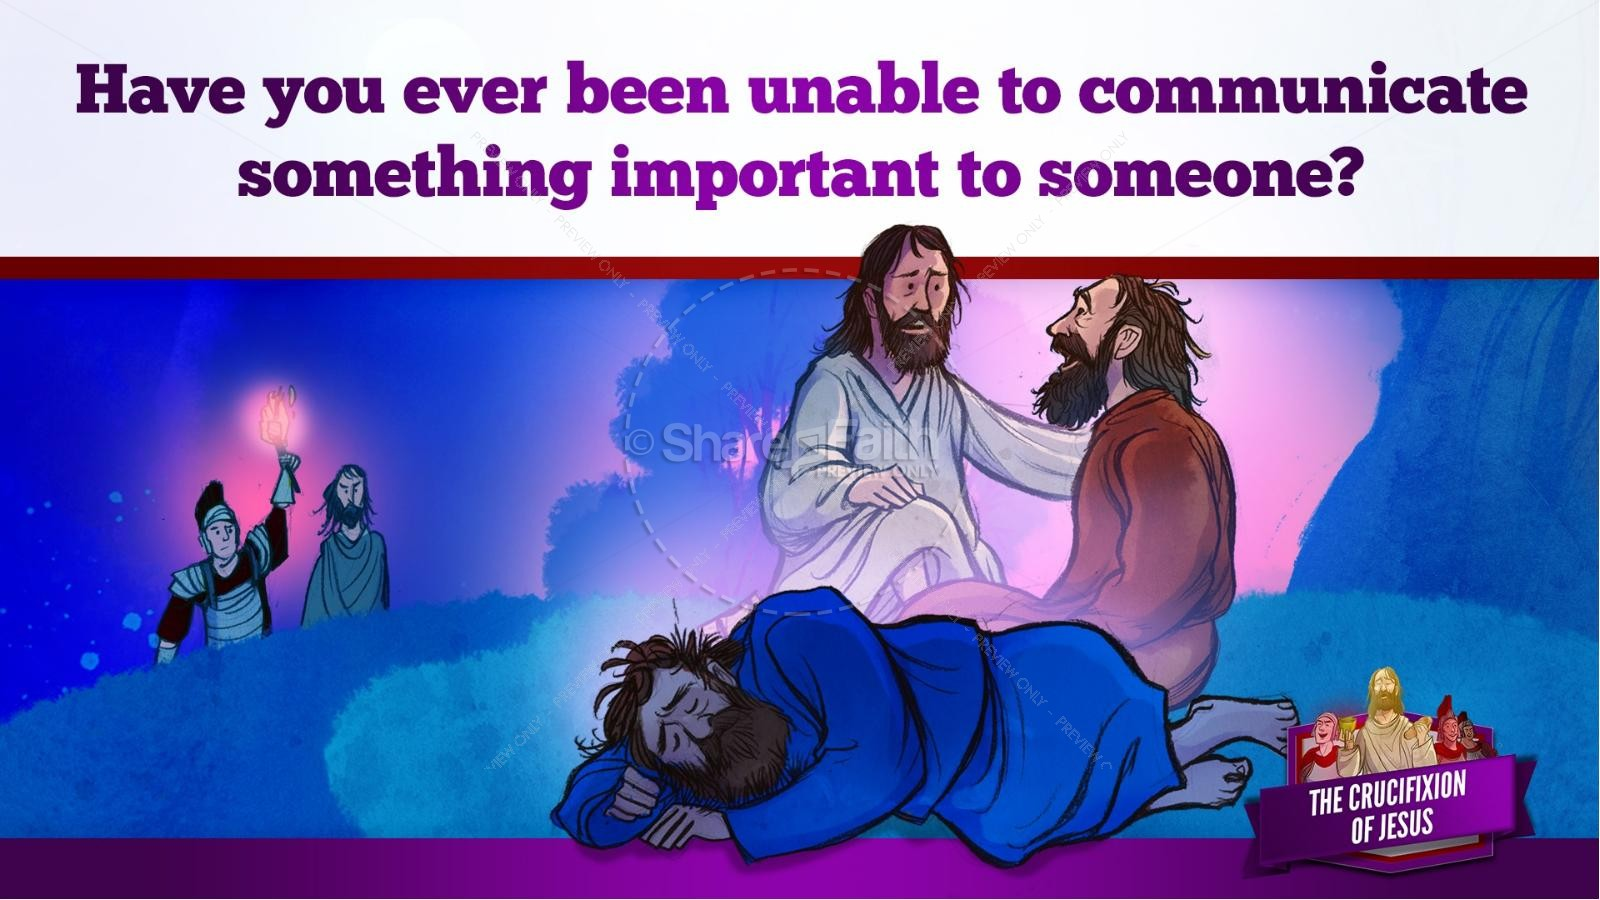 Jesus' Crucifixion Kids Bible Story